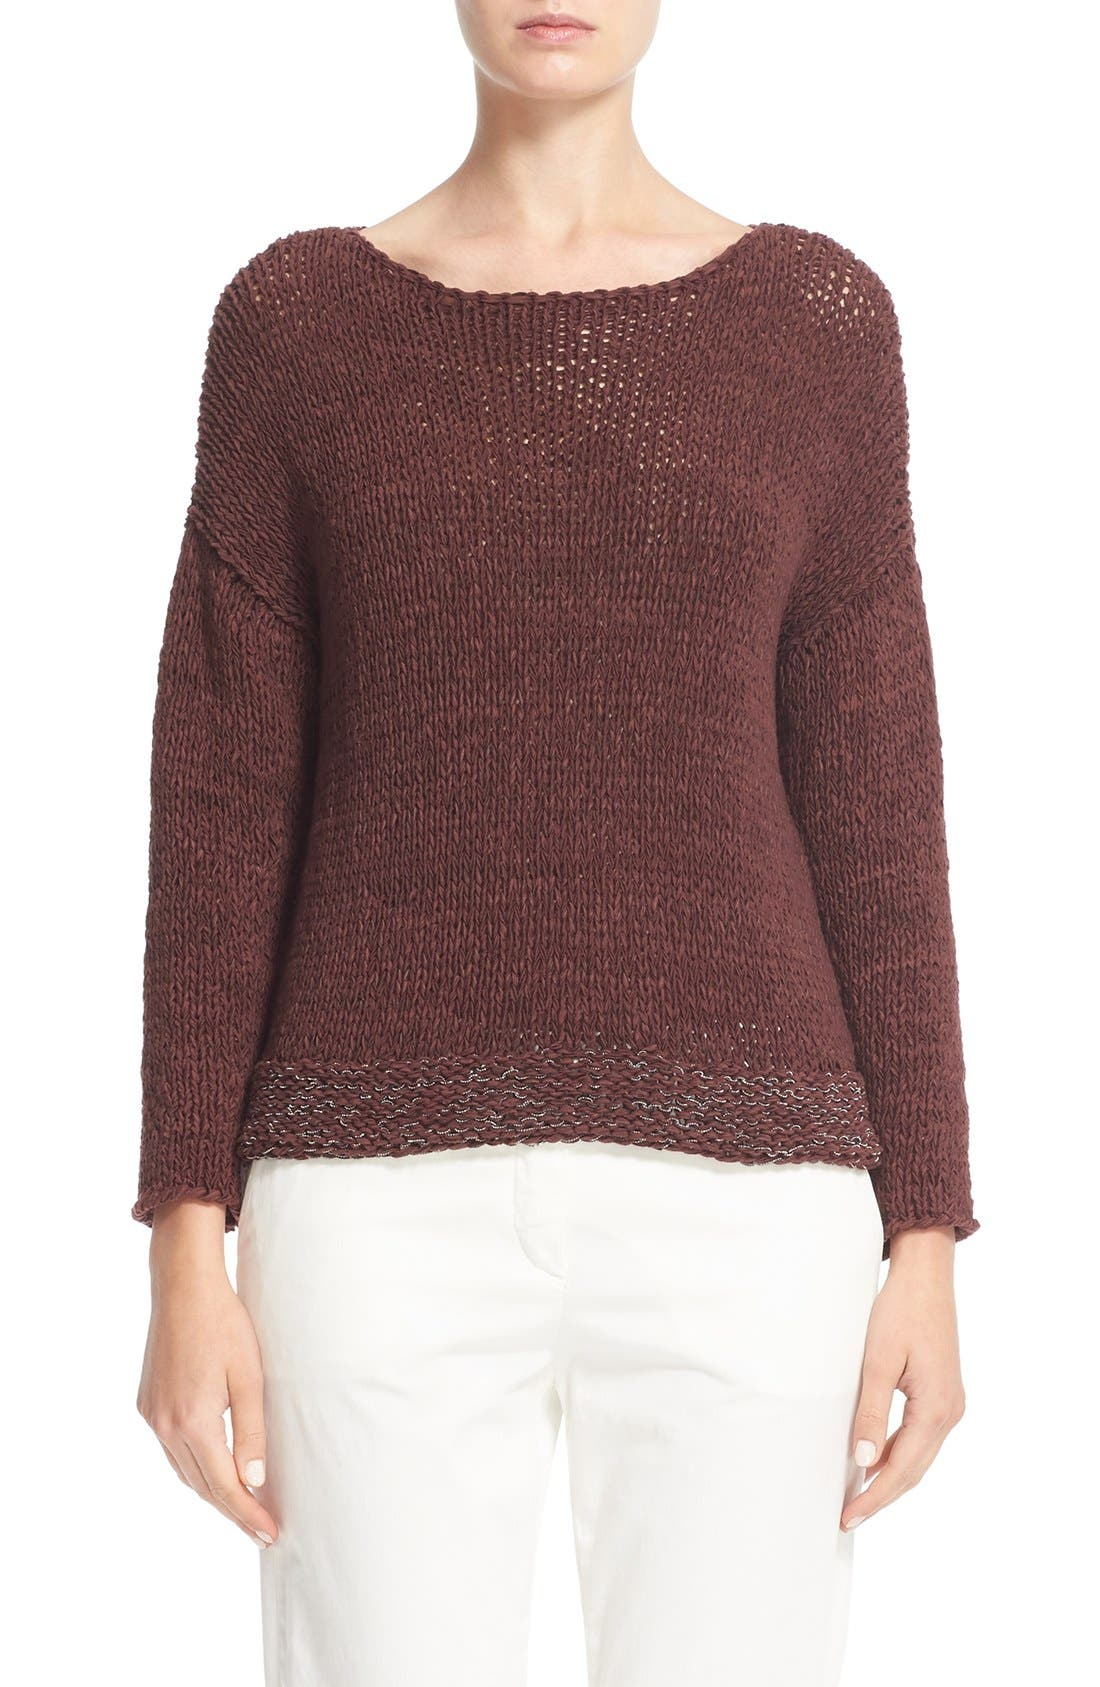 FABIANA FILIPPI Mollini Trim Cotton Blend Sweater